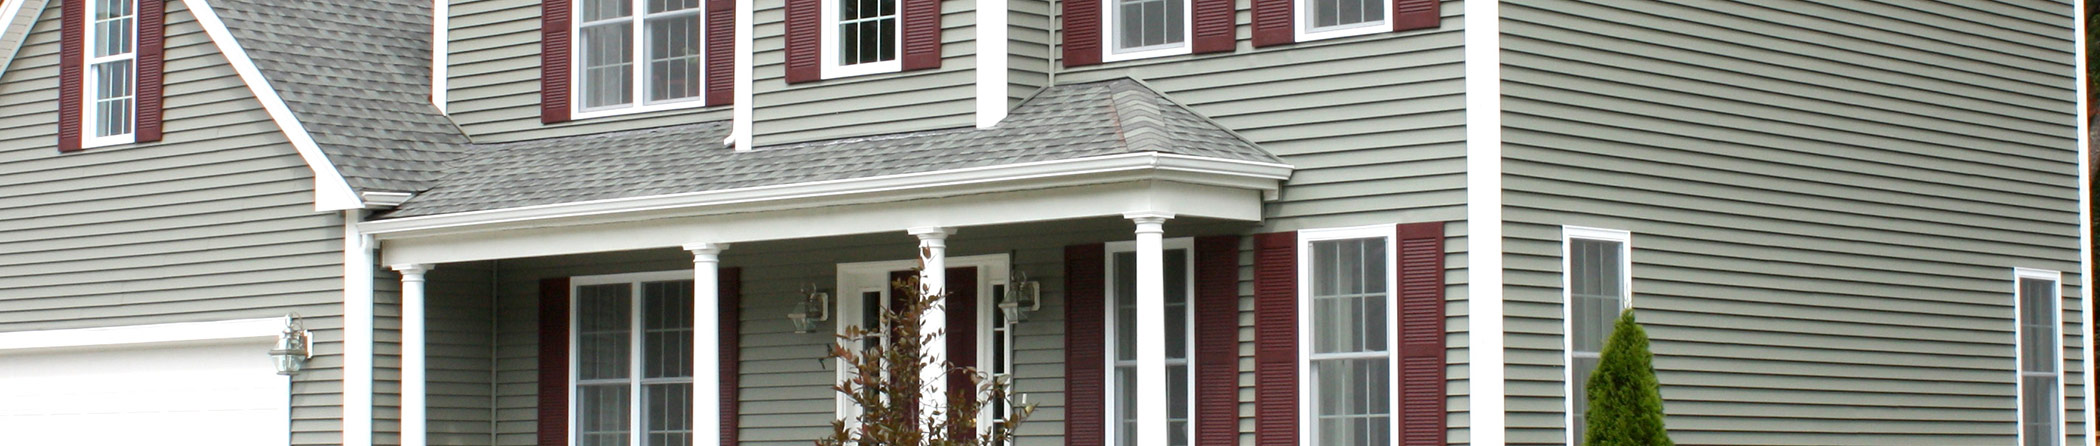 Replacement Windows Chicago Il Siding Roofing Doors